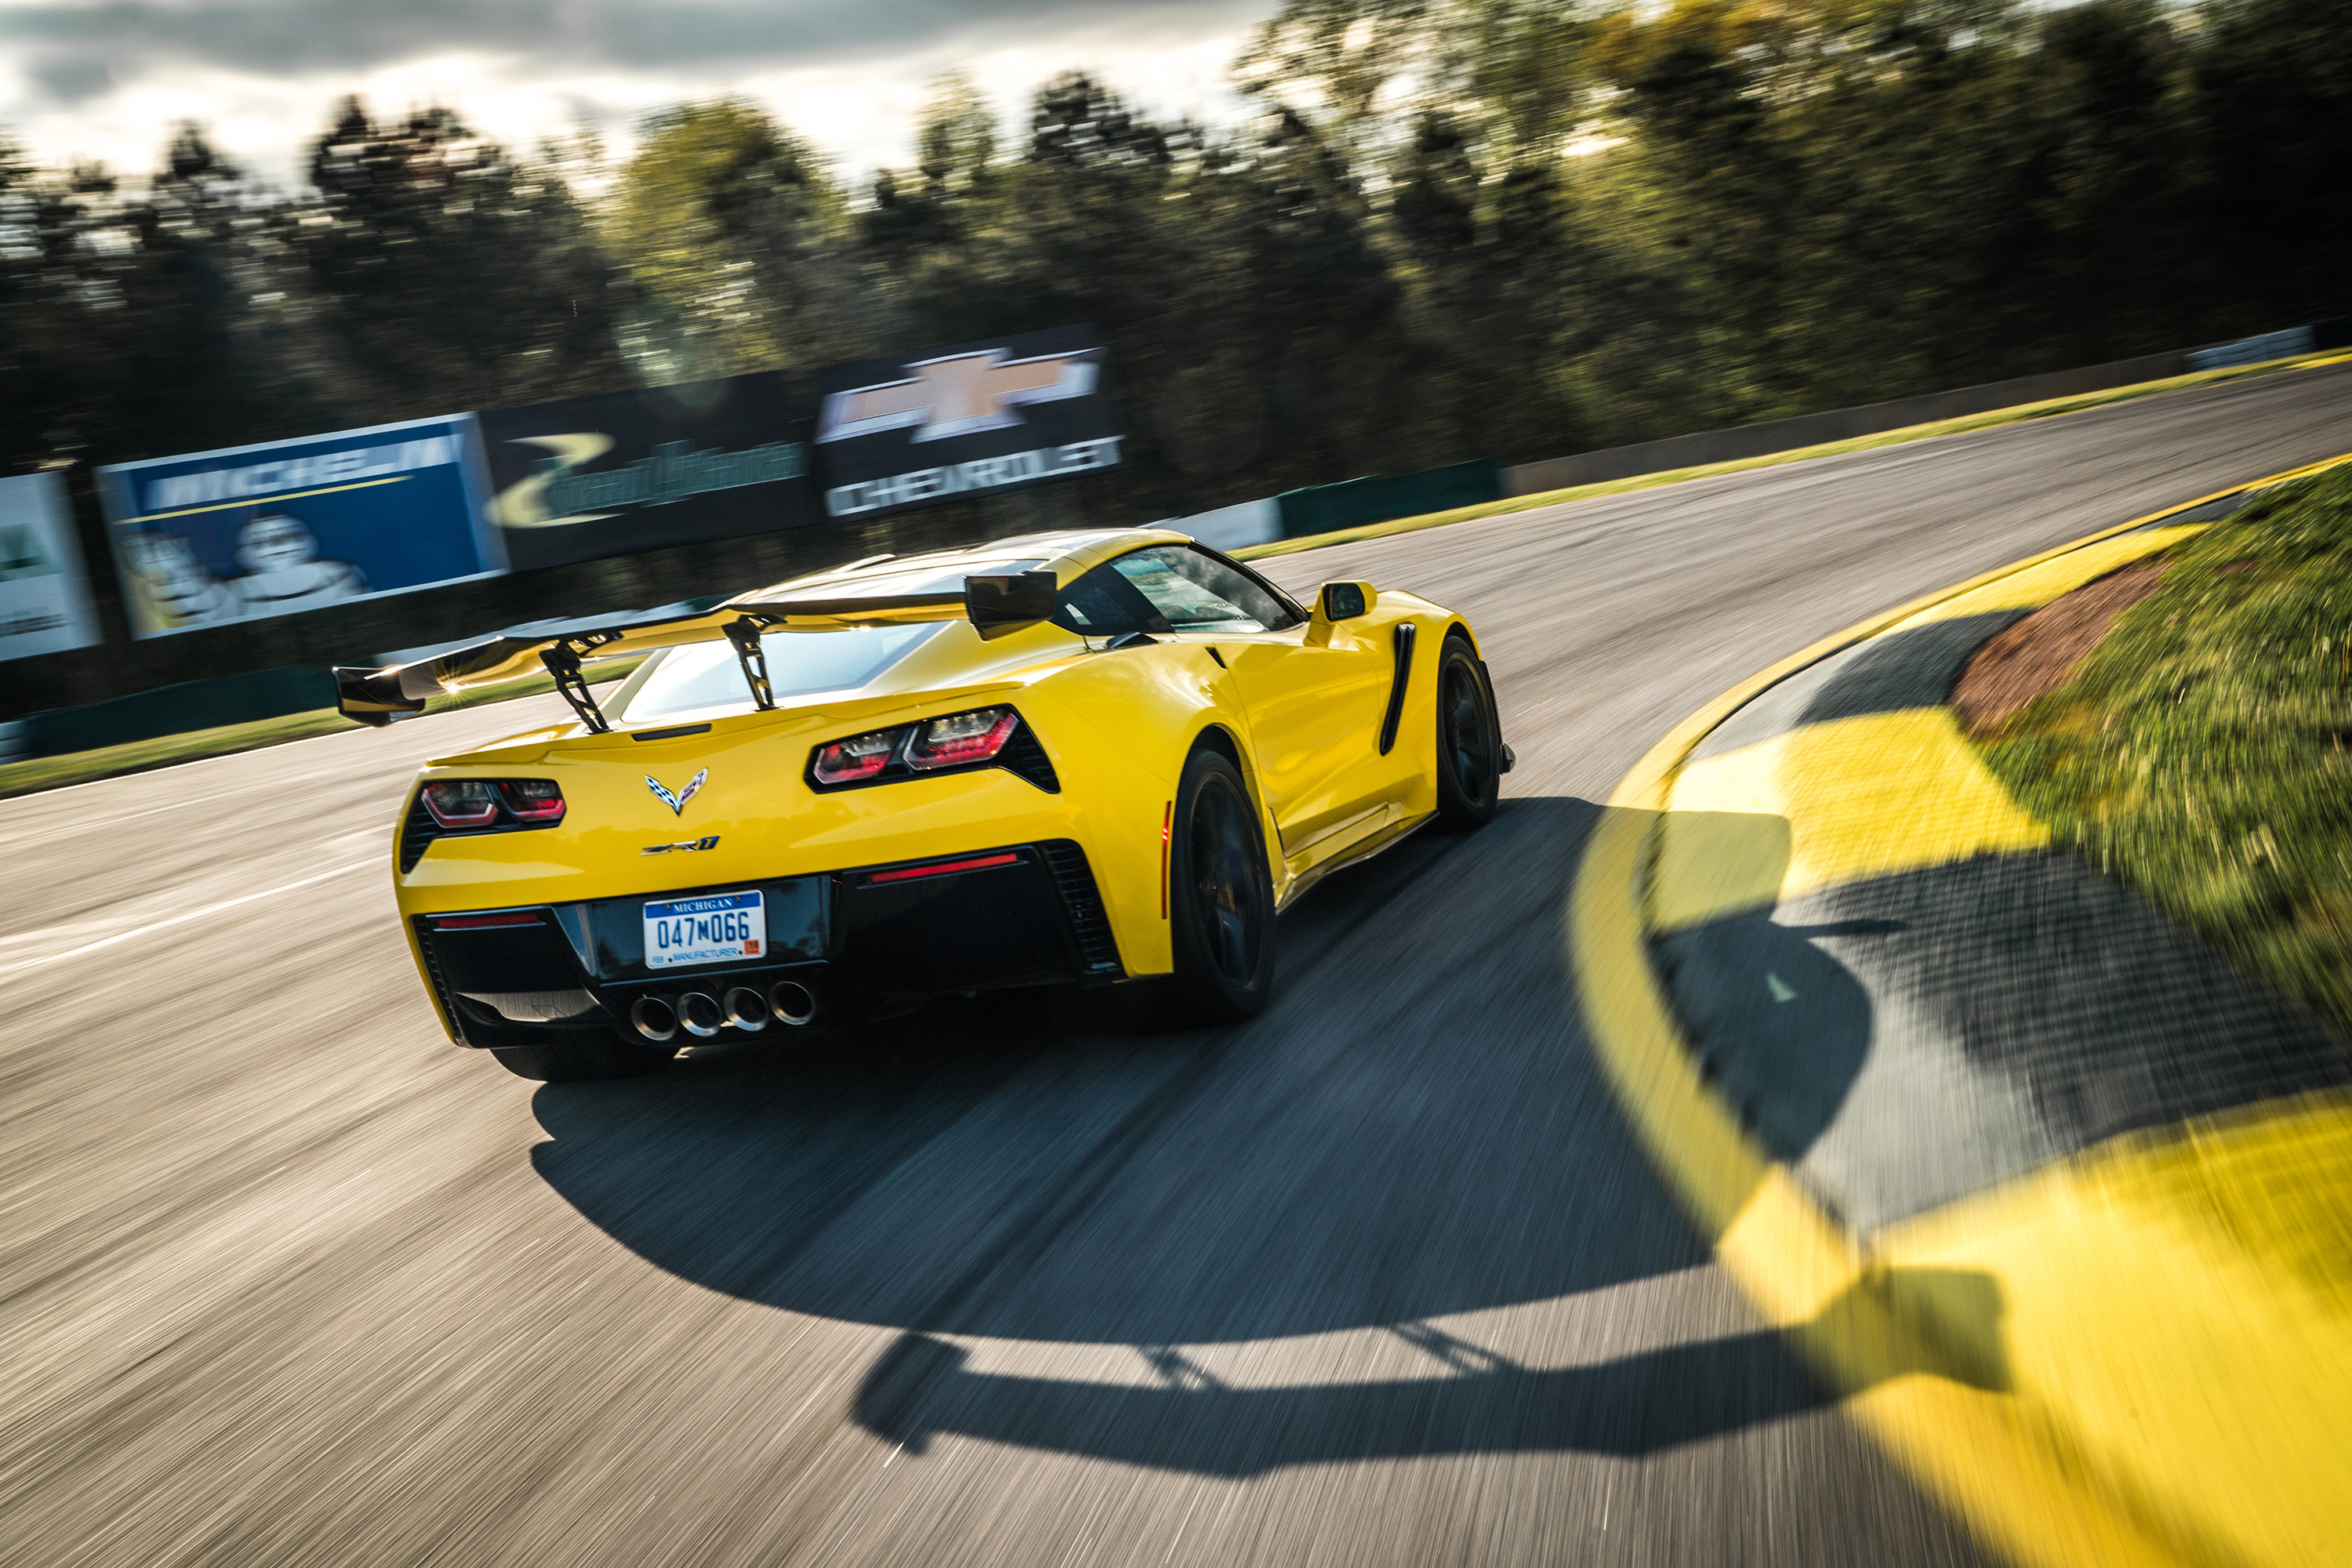 2019 chevy corvette z06 road atlanta yellow track rear wing